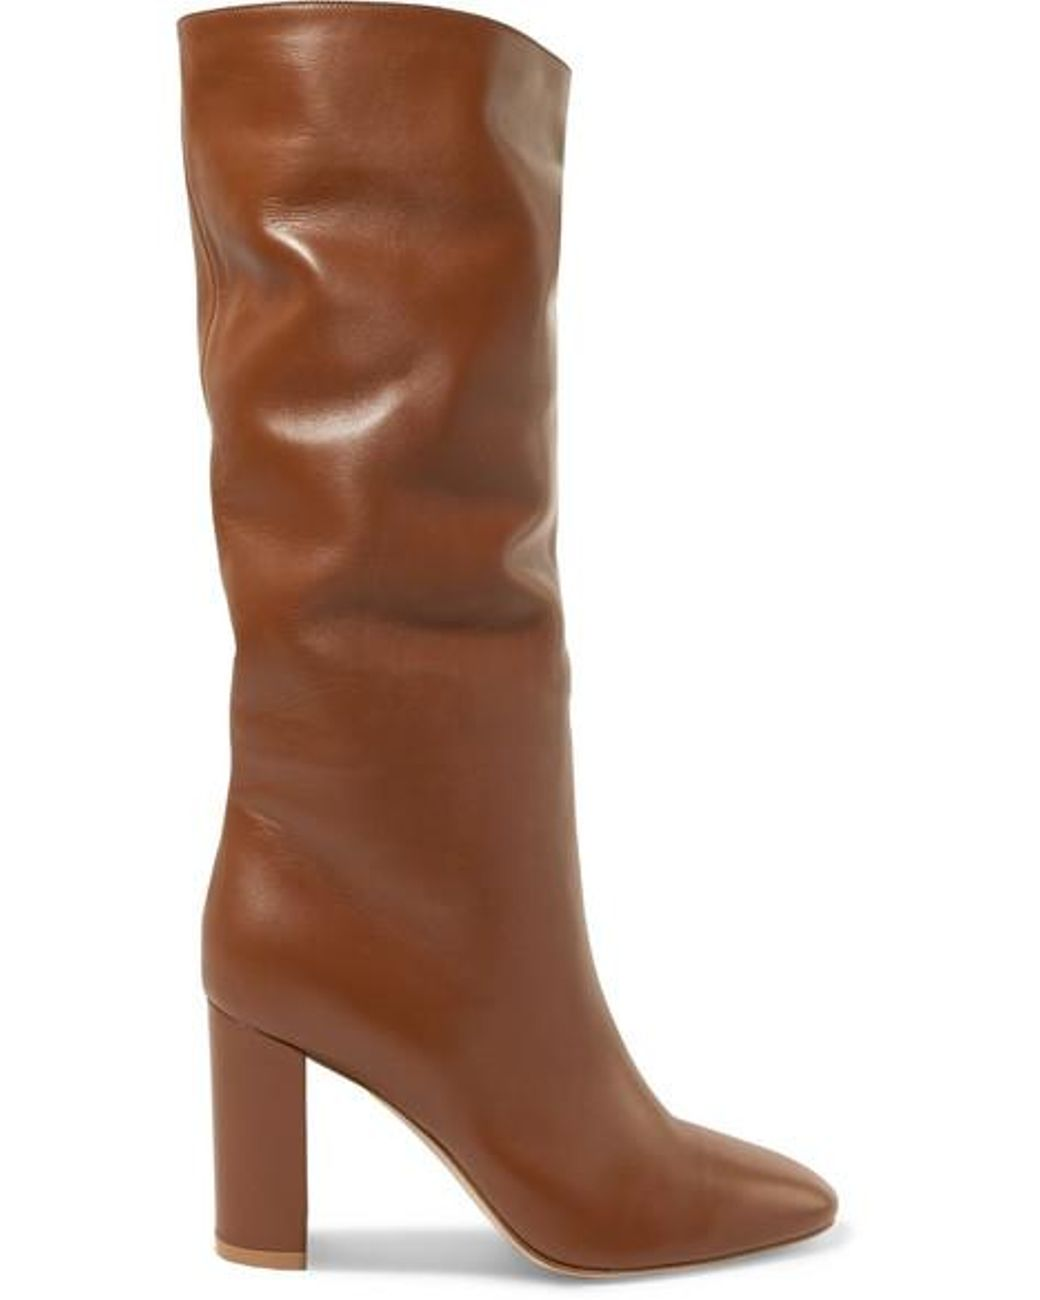 a3cd900a9e749 Gianvito Rossi Laura 85 Leather Knee Boots in Brown - Save 4% - Lyst